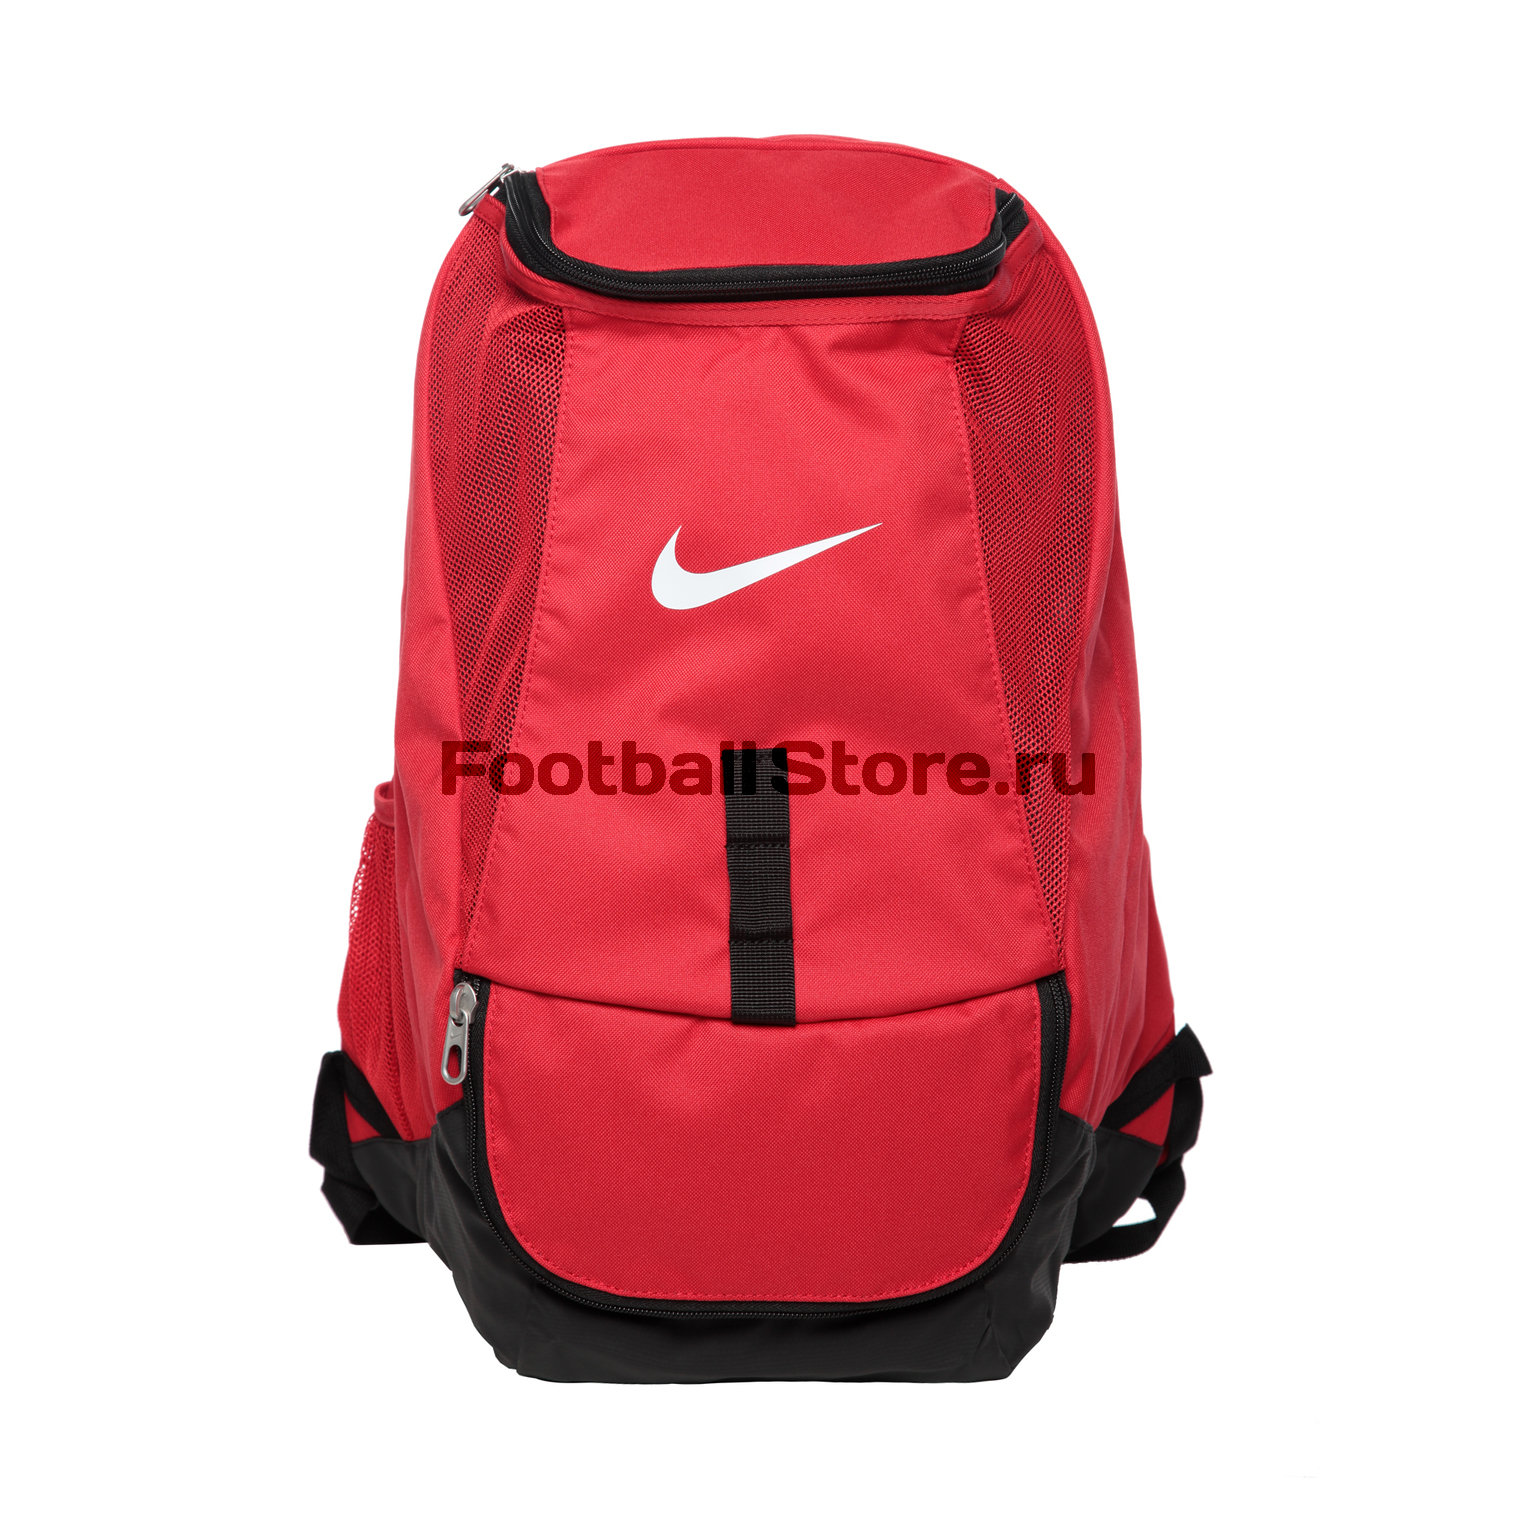 Сумки/Рюкзаки Nike Рюкзак Nike Club Team Swoosh BackPack BA5190-657 nike nike club team swoosh backpack